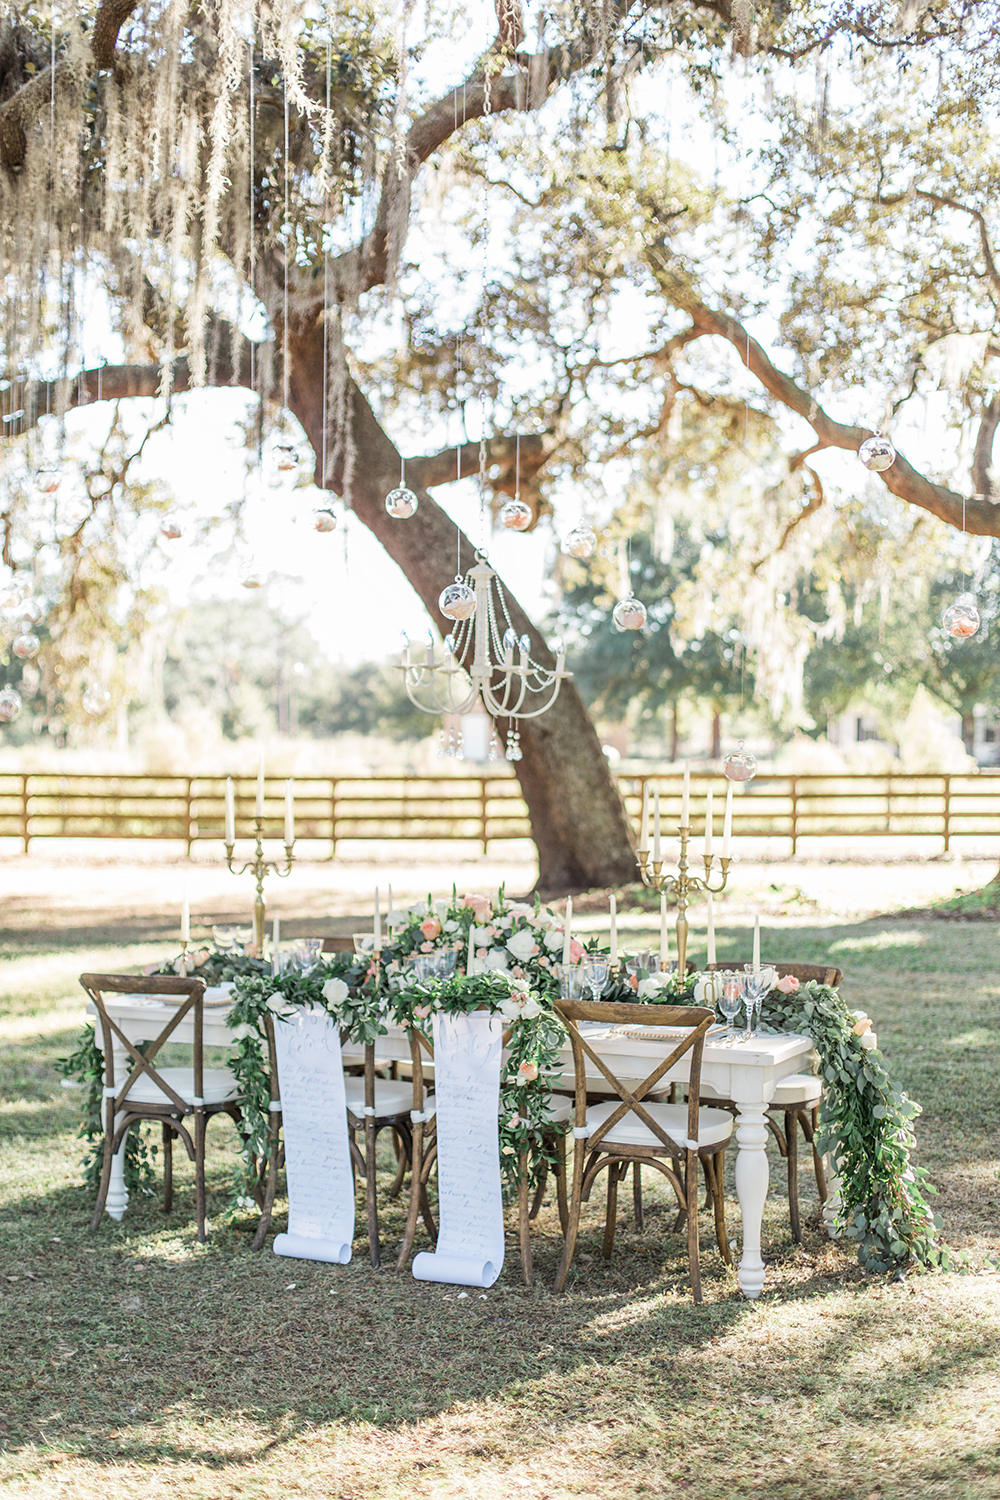 romantic wedding receptions - photo by Landon Hendrick Photography http://ruffledblog.com/southern-garden-chic-wedding-inspiration